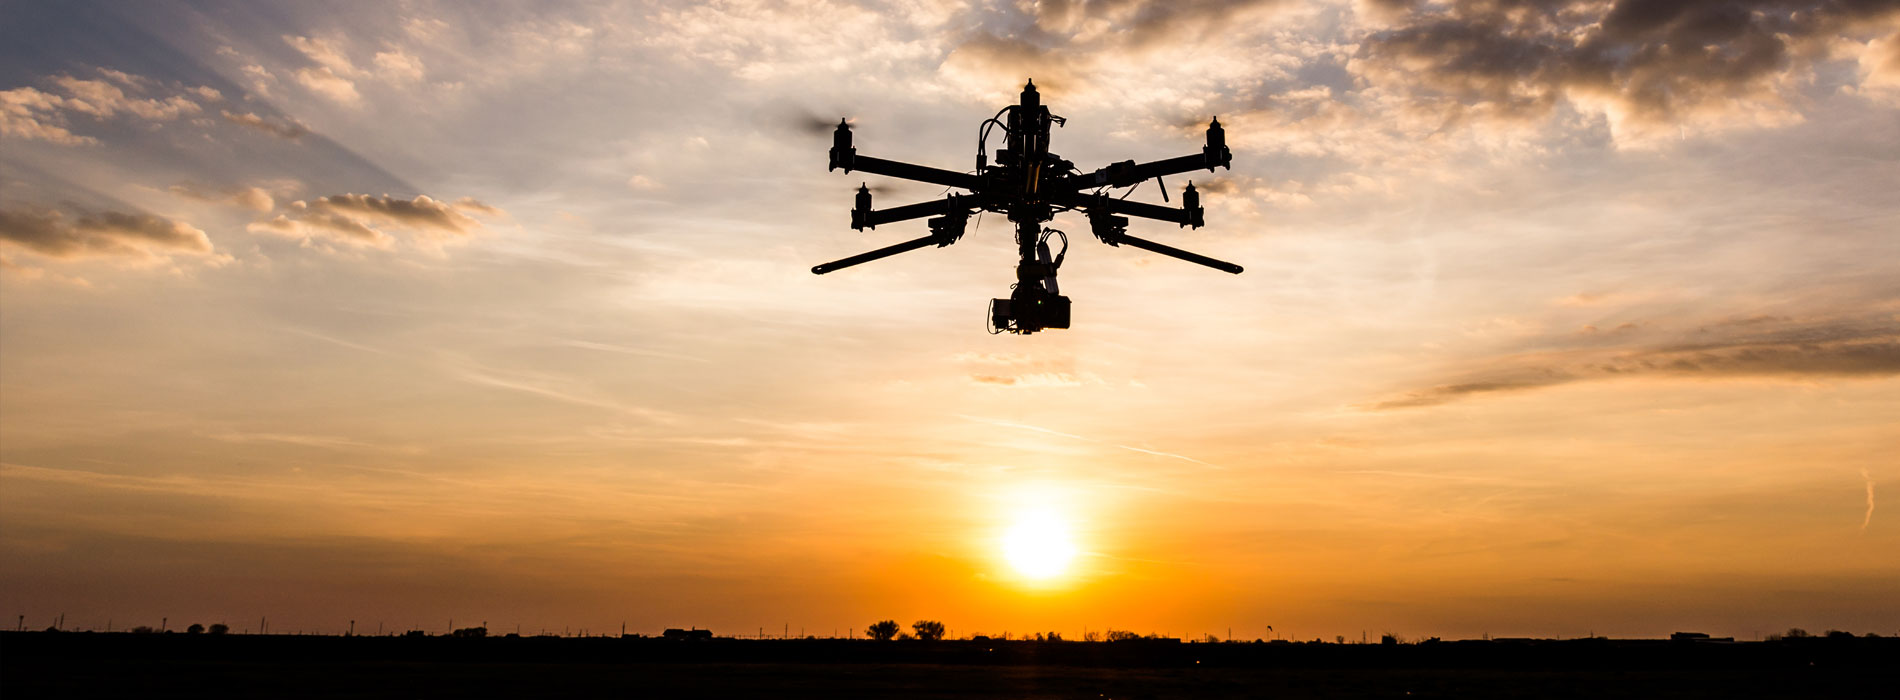 DEI Drone Video & Photo Award Dinner - Drone Expo International